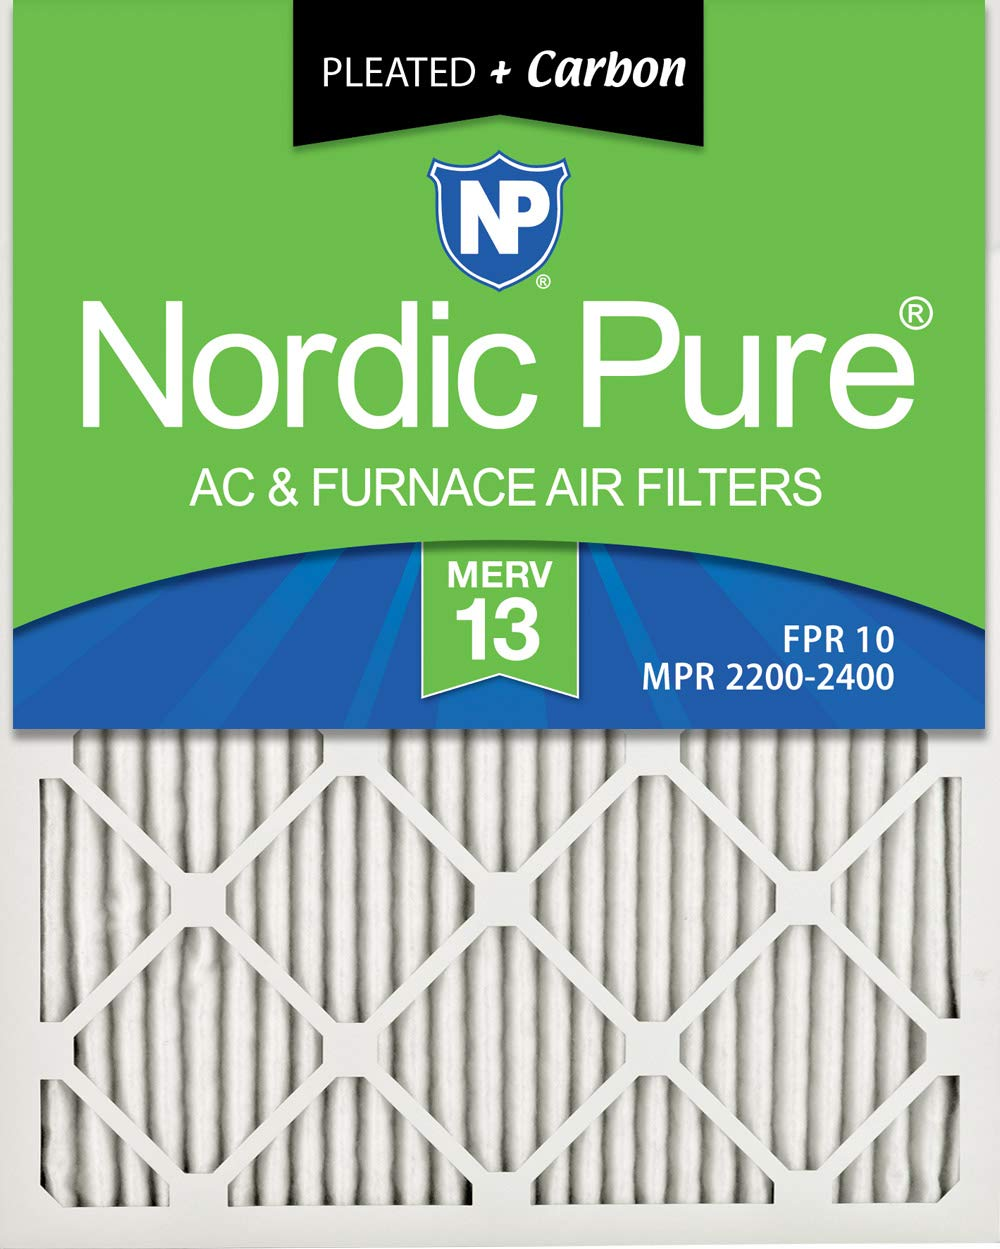 6 PACK 6 PACK 6 Pack Nordic Pure 12x20x1 MERV 14 Plus Carbon Pleated AC Furnace Air Filters